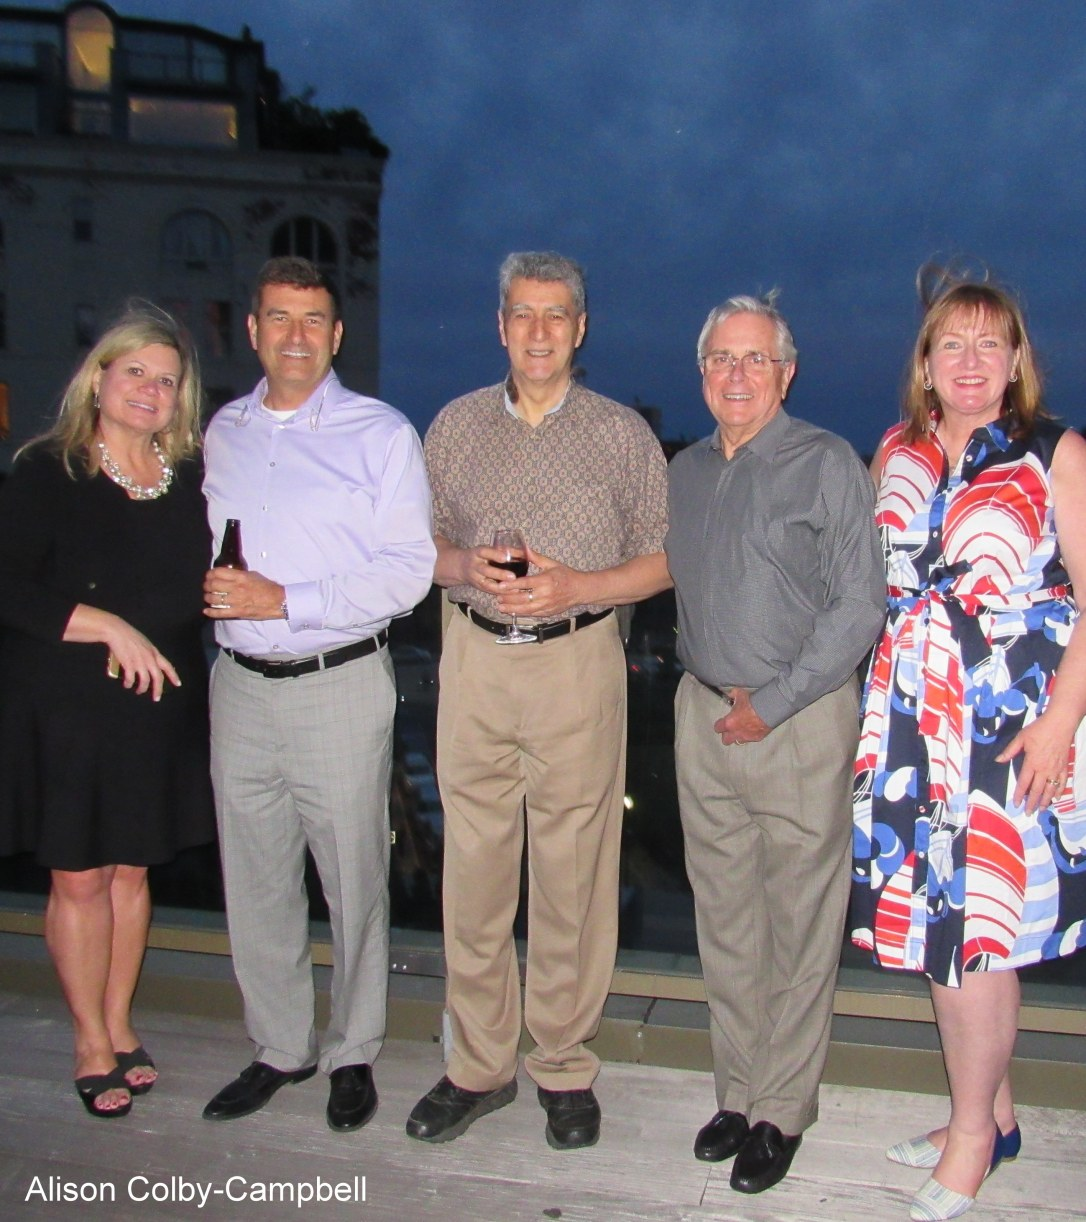 IMG_3295 Boston DFS Reunion on roof deck AWESOME